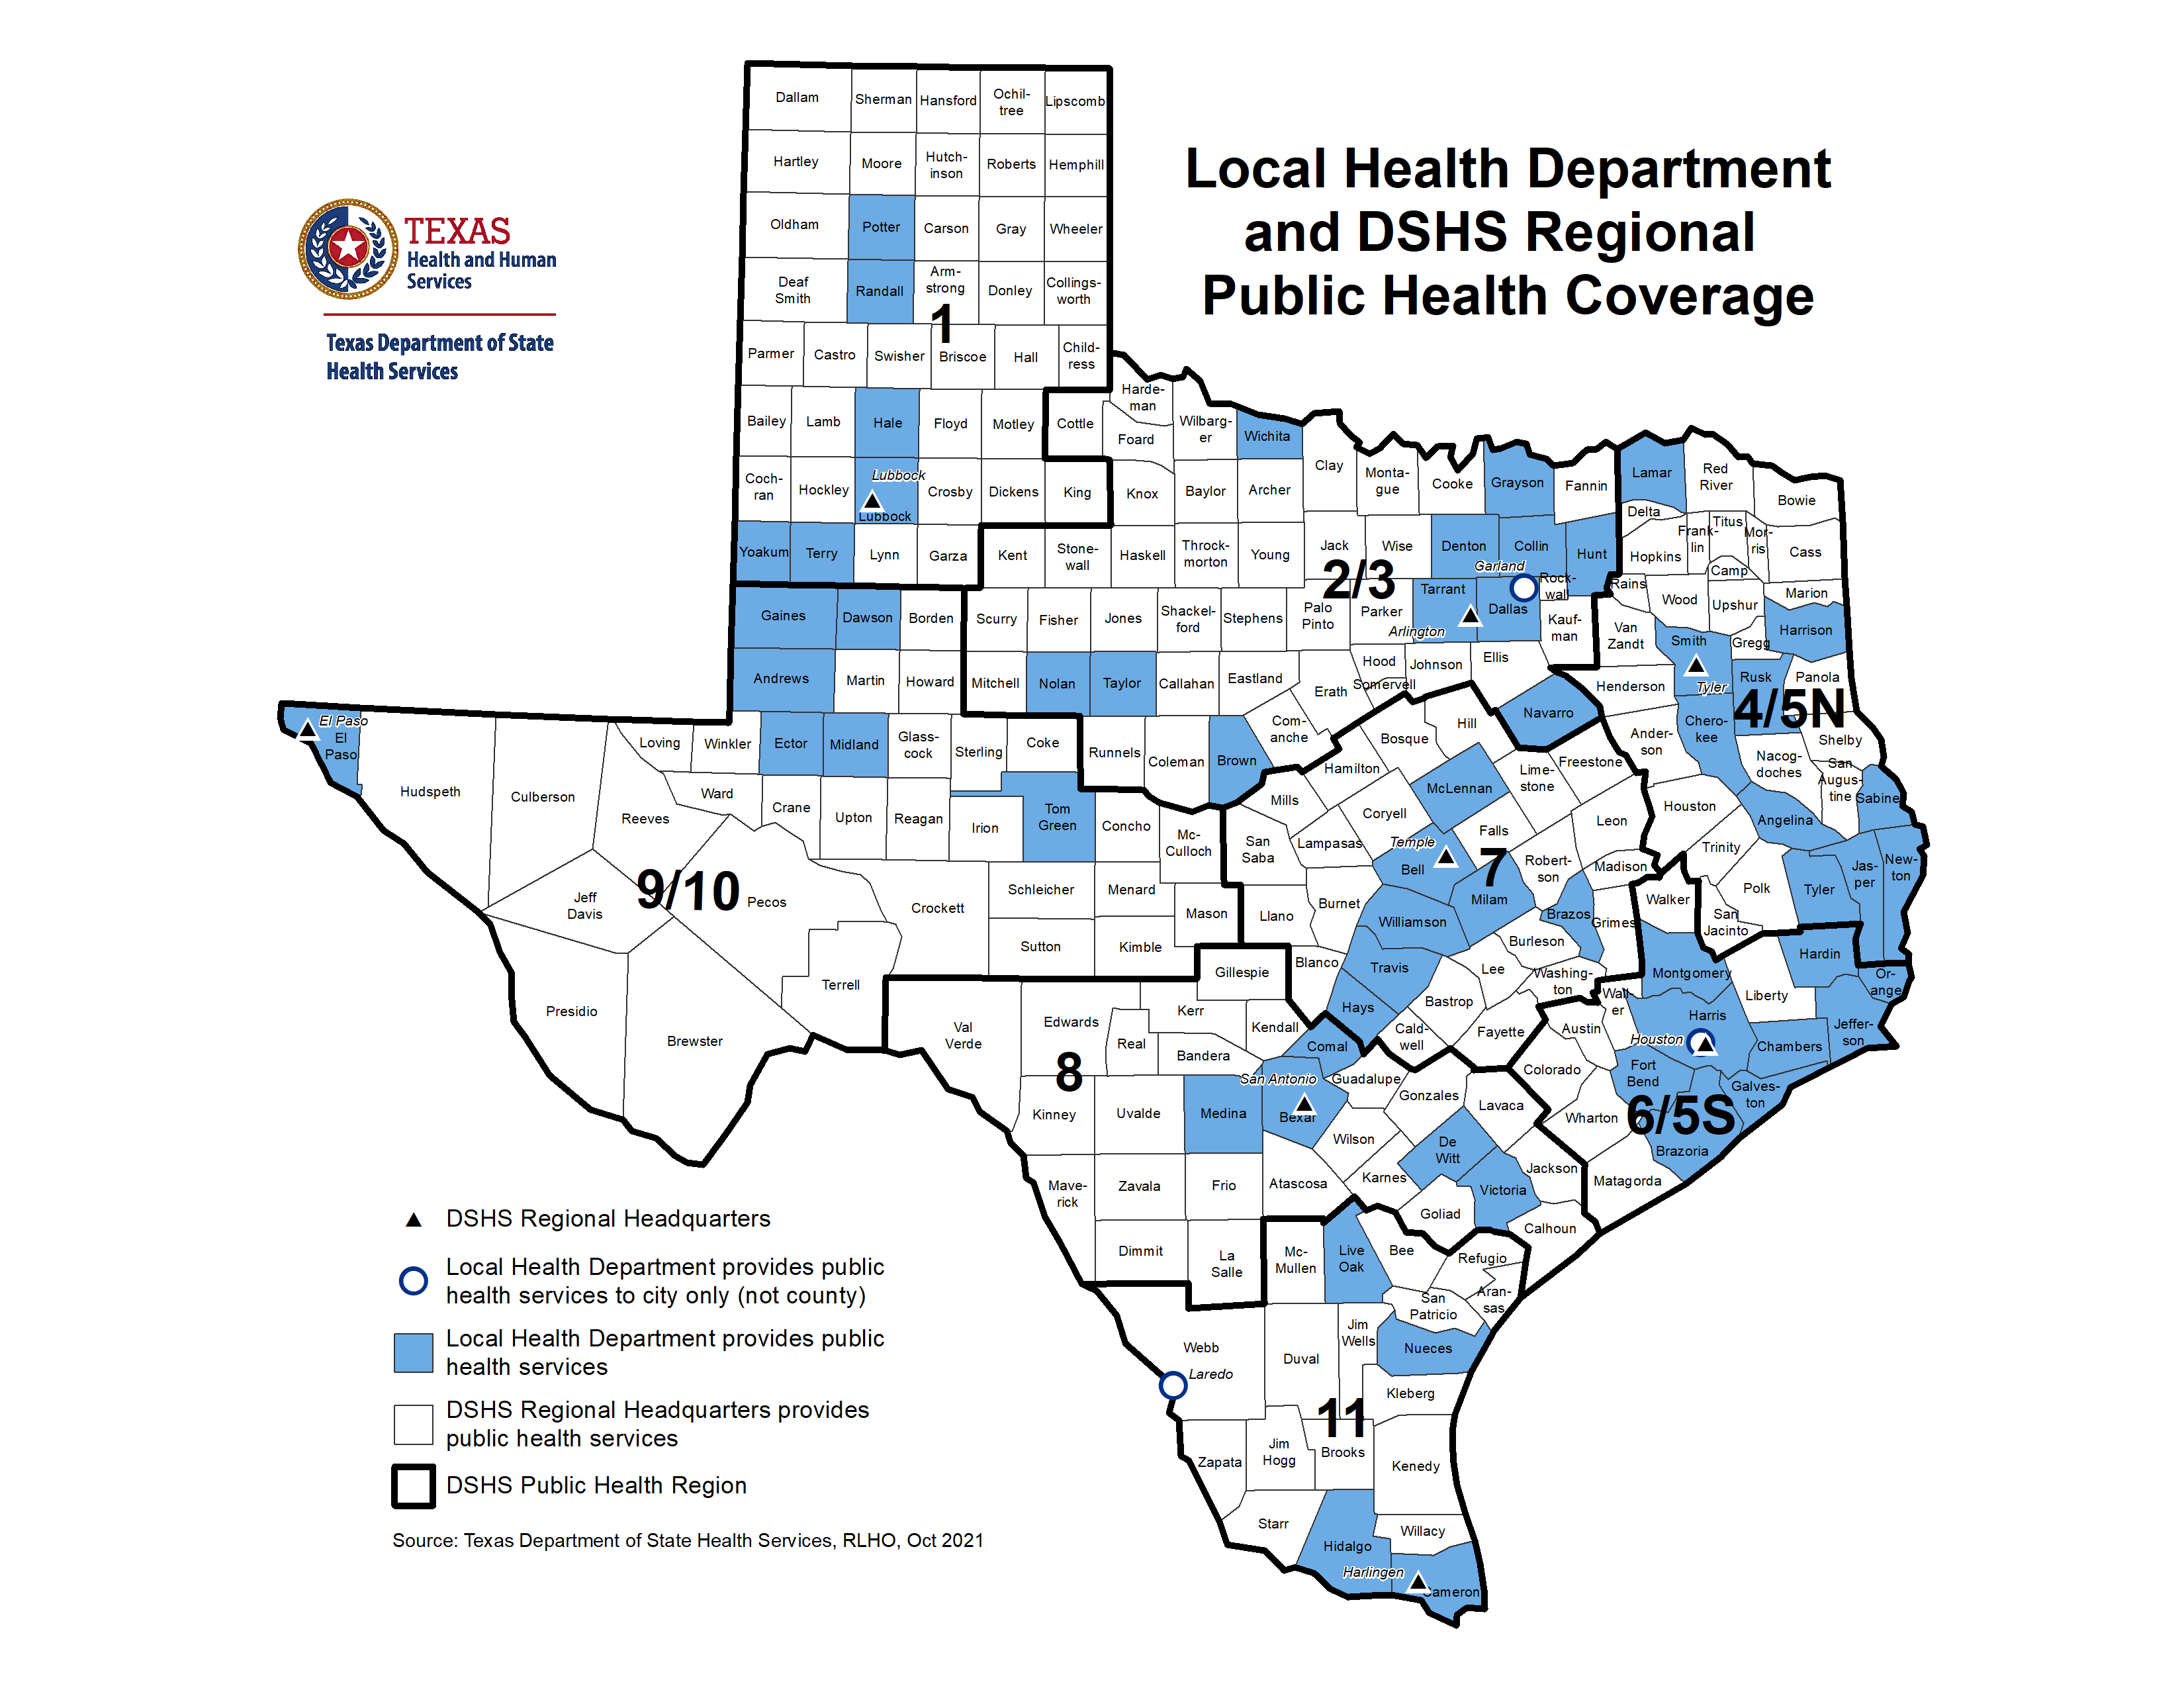 Texas Regions Map Texas Department of State Health Services, Health Service Regions Map